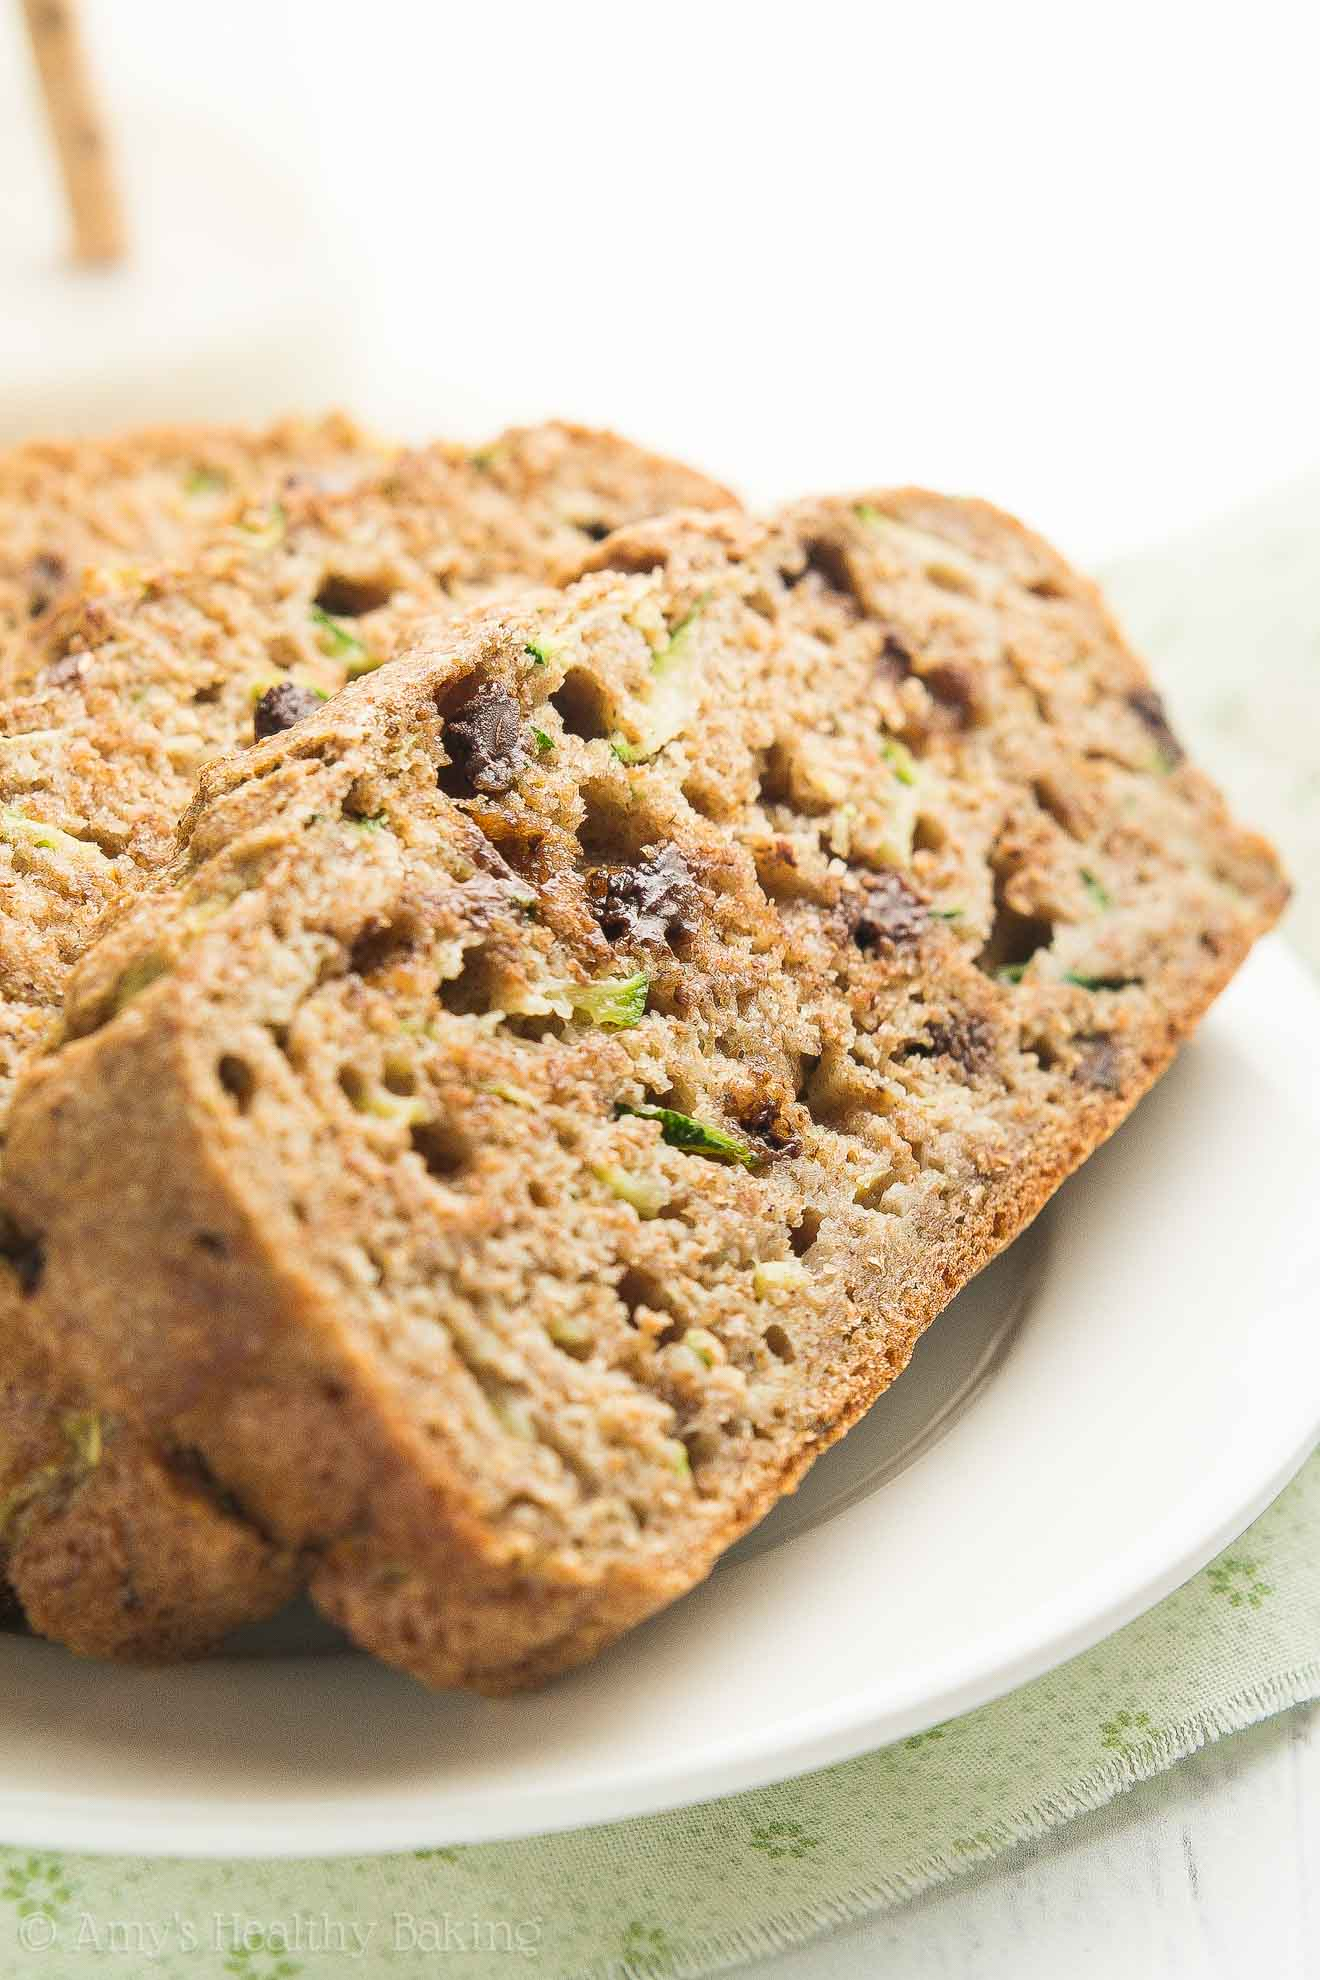 Healthy Chai Spice Chocolate Chip Zucchini Bread -- the BEST recipe I've EVER had! So easy to make (no mixer required!) & as tender as cake! I always get a million compliments on this zucchini bread! OBSESSED!!